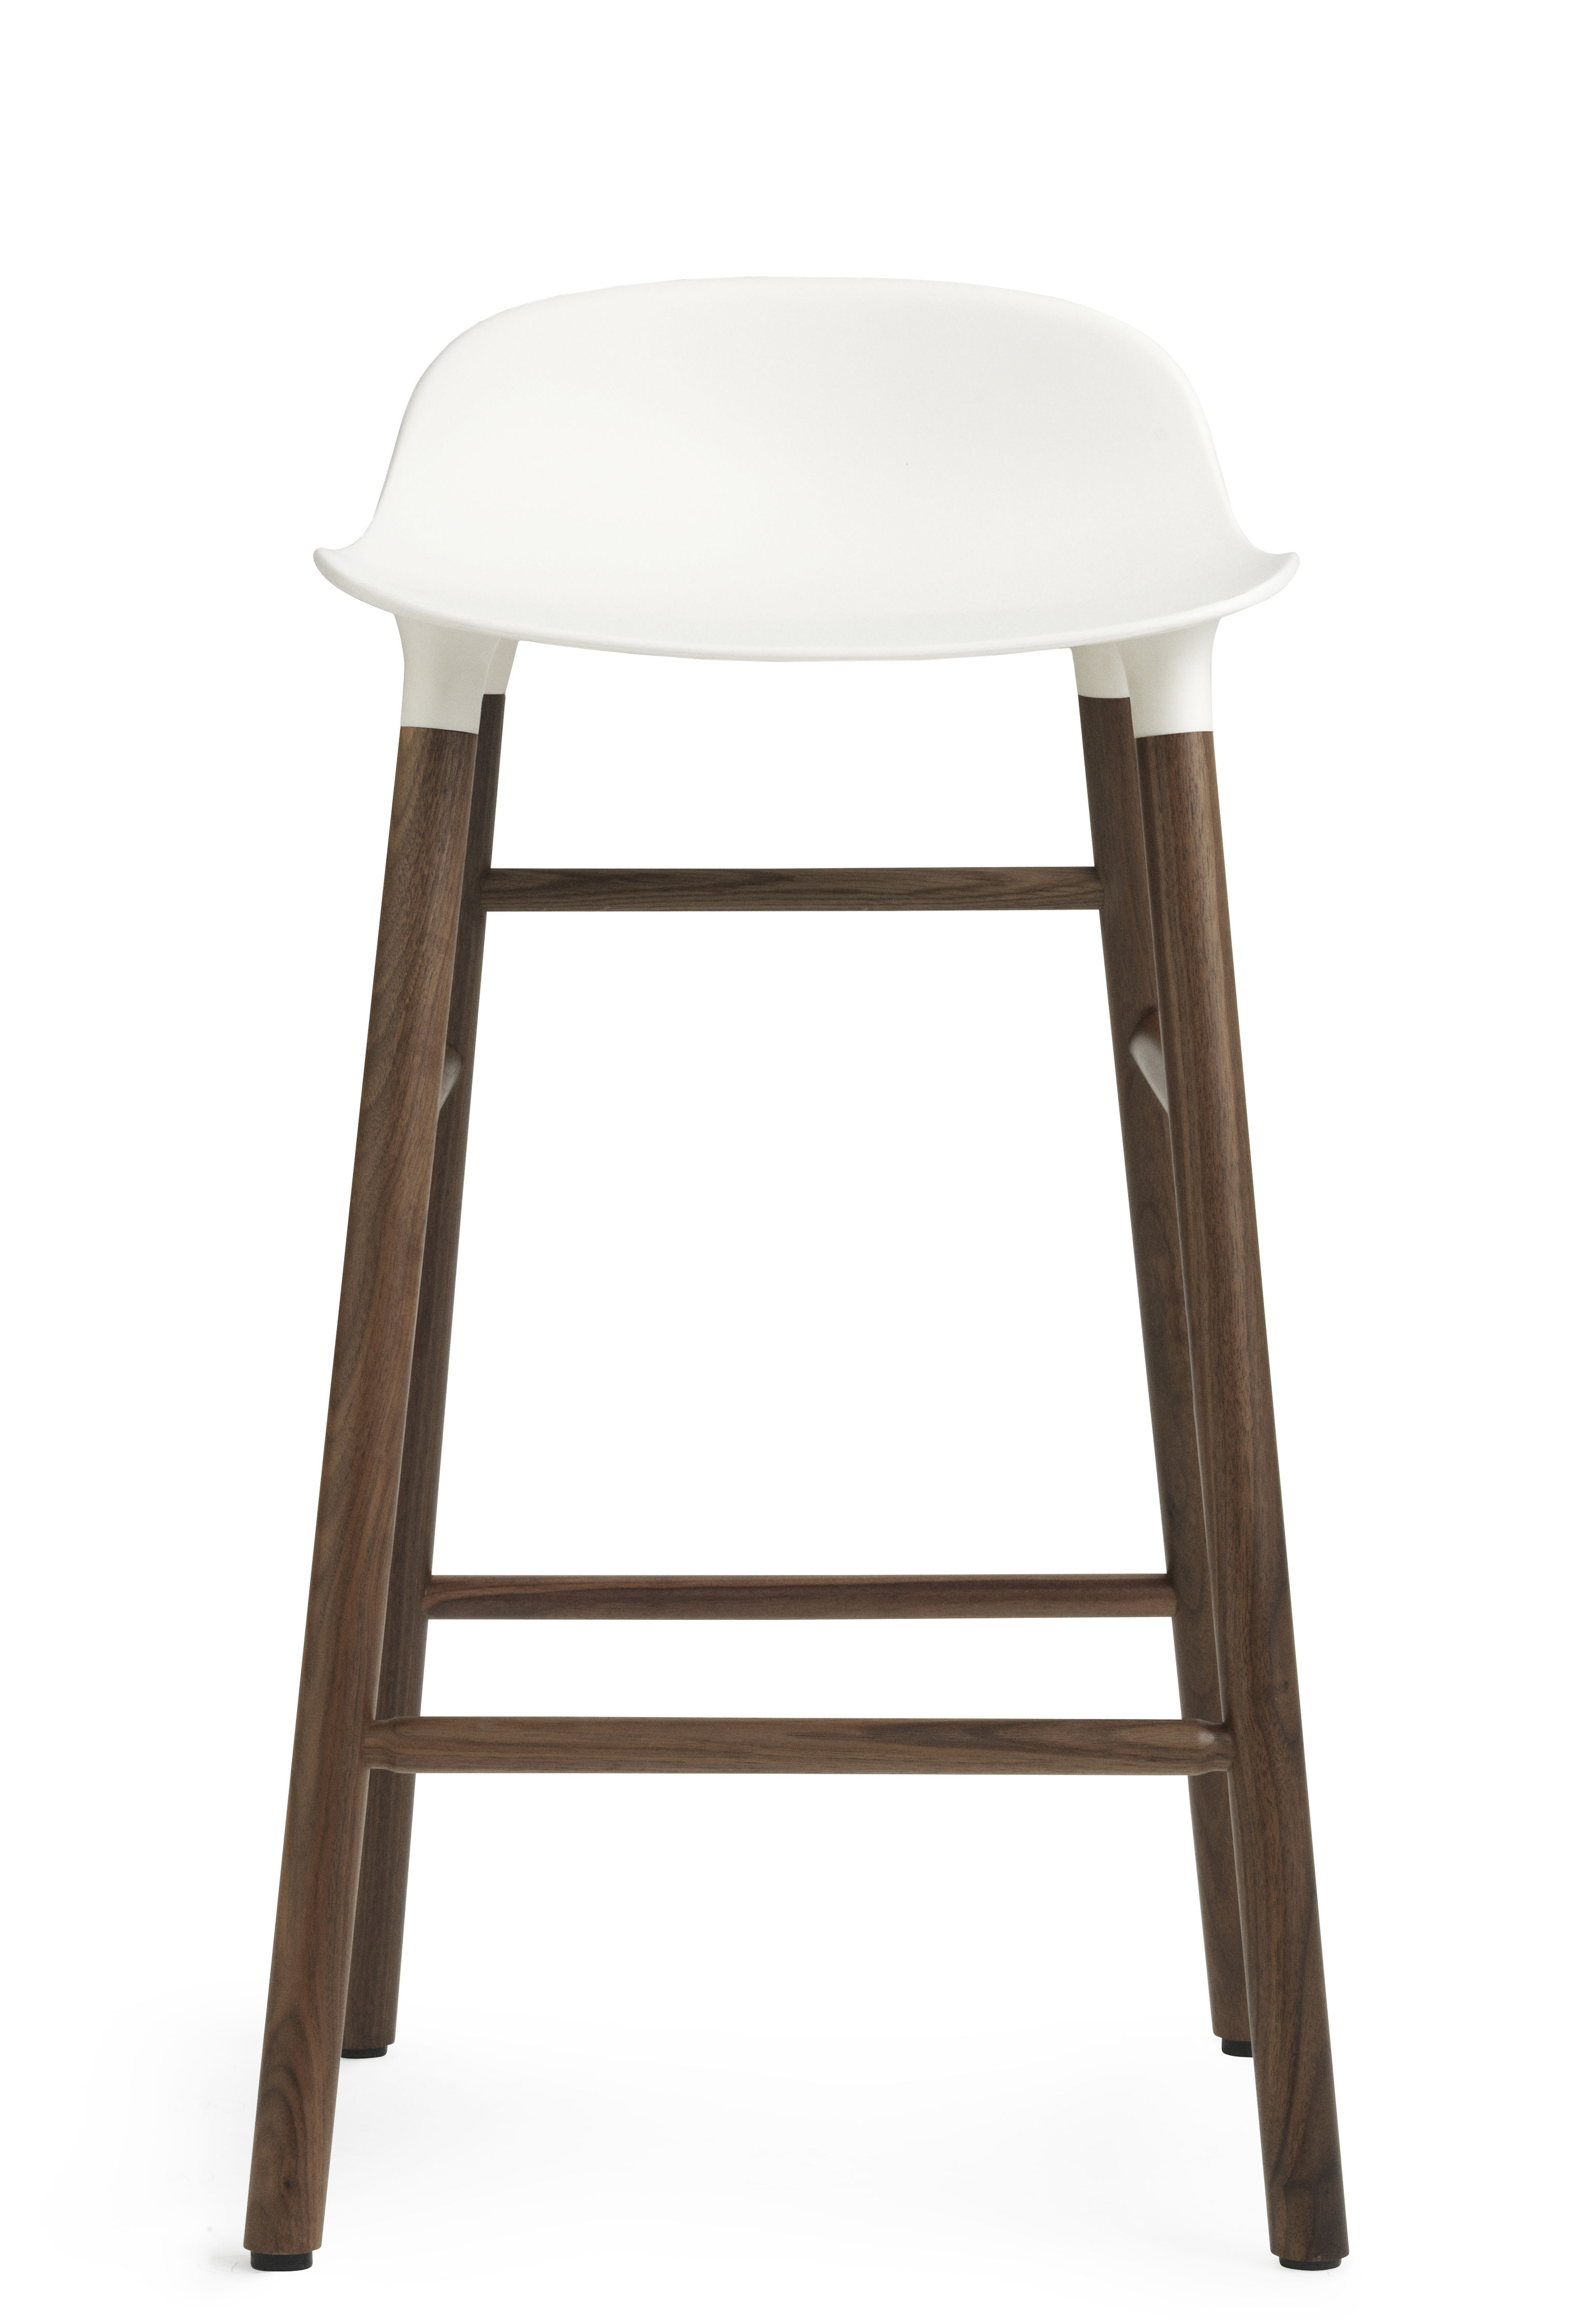 tabouret de bar form h 65 cm pied noyer blanc noyer. Black Bedroom Furniture Sets. Home Design Ideas